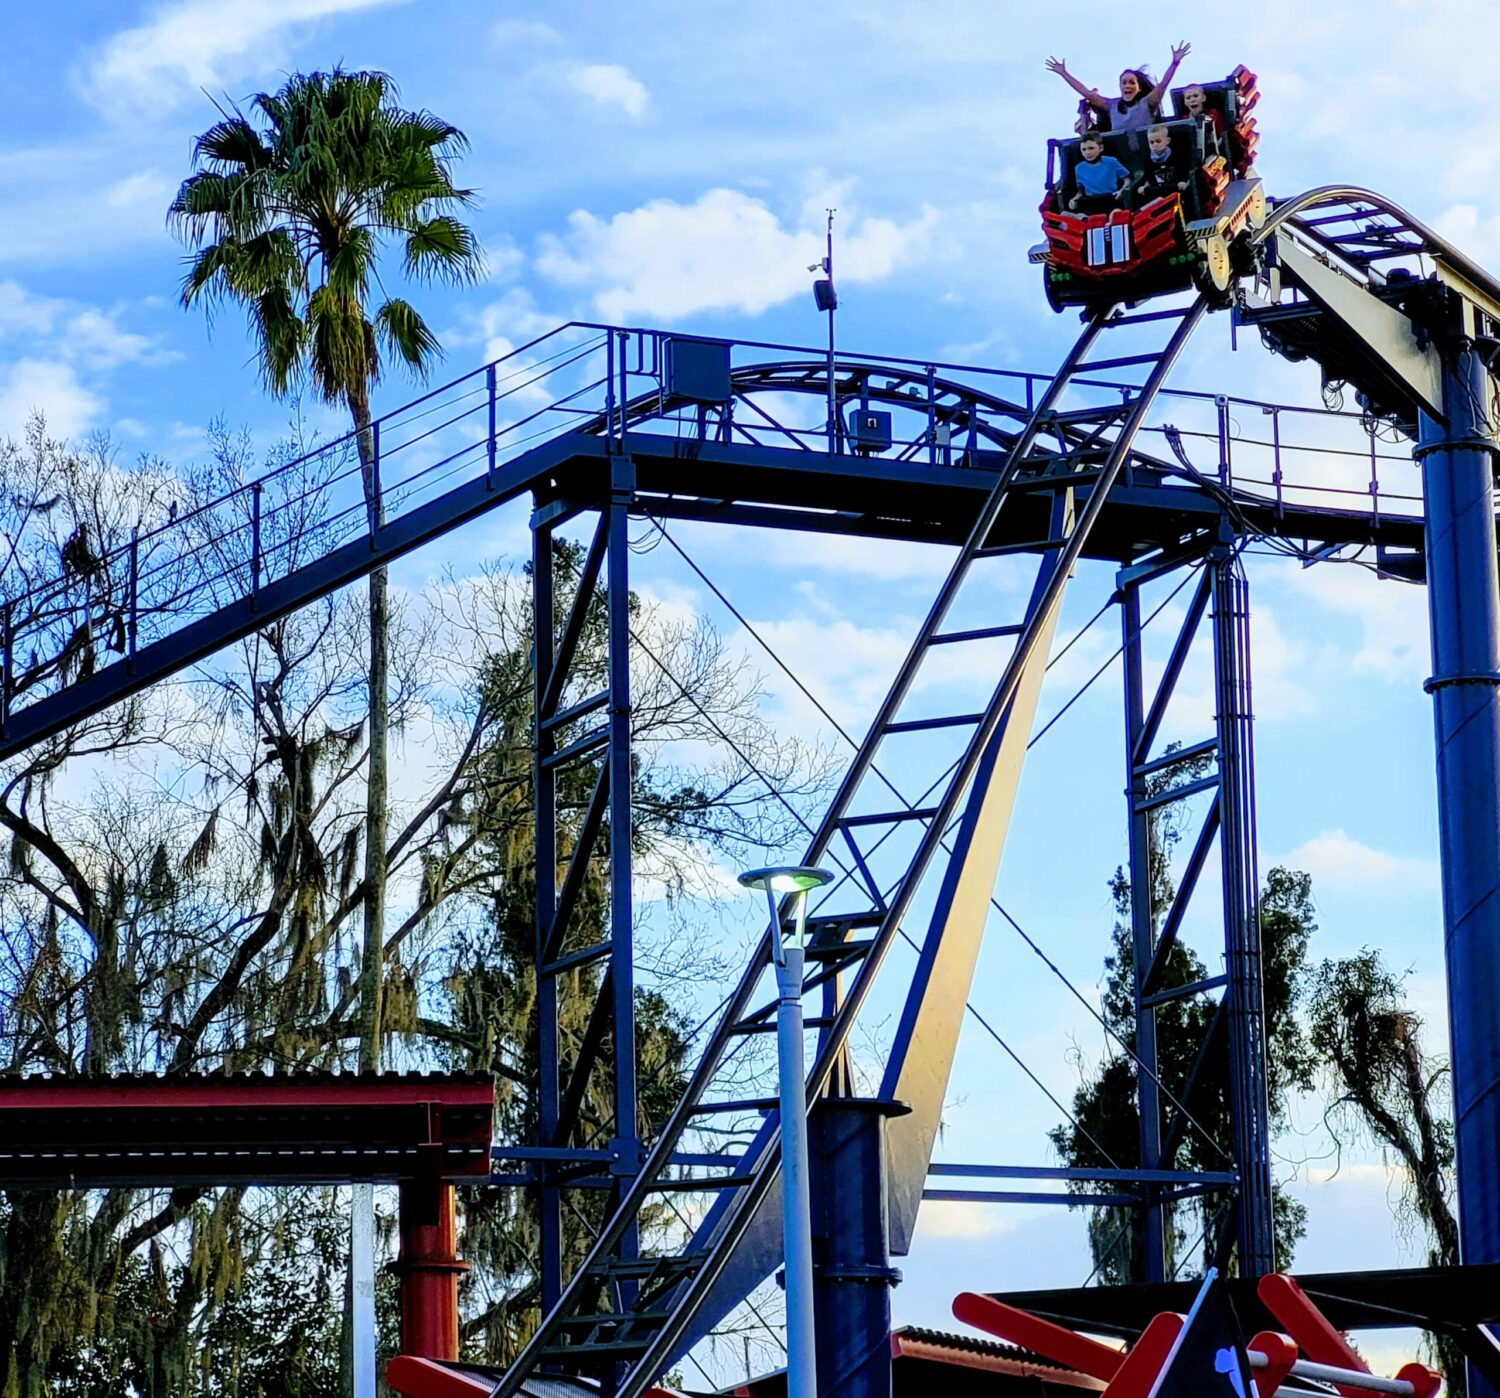 Roller coaster at LEGOLAND, a fun place to visit with teens and tweens